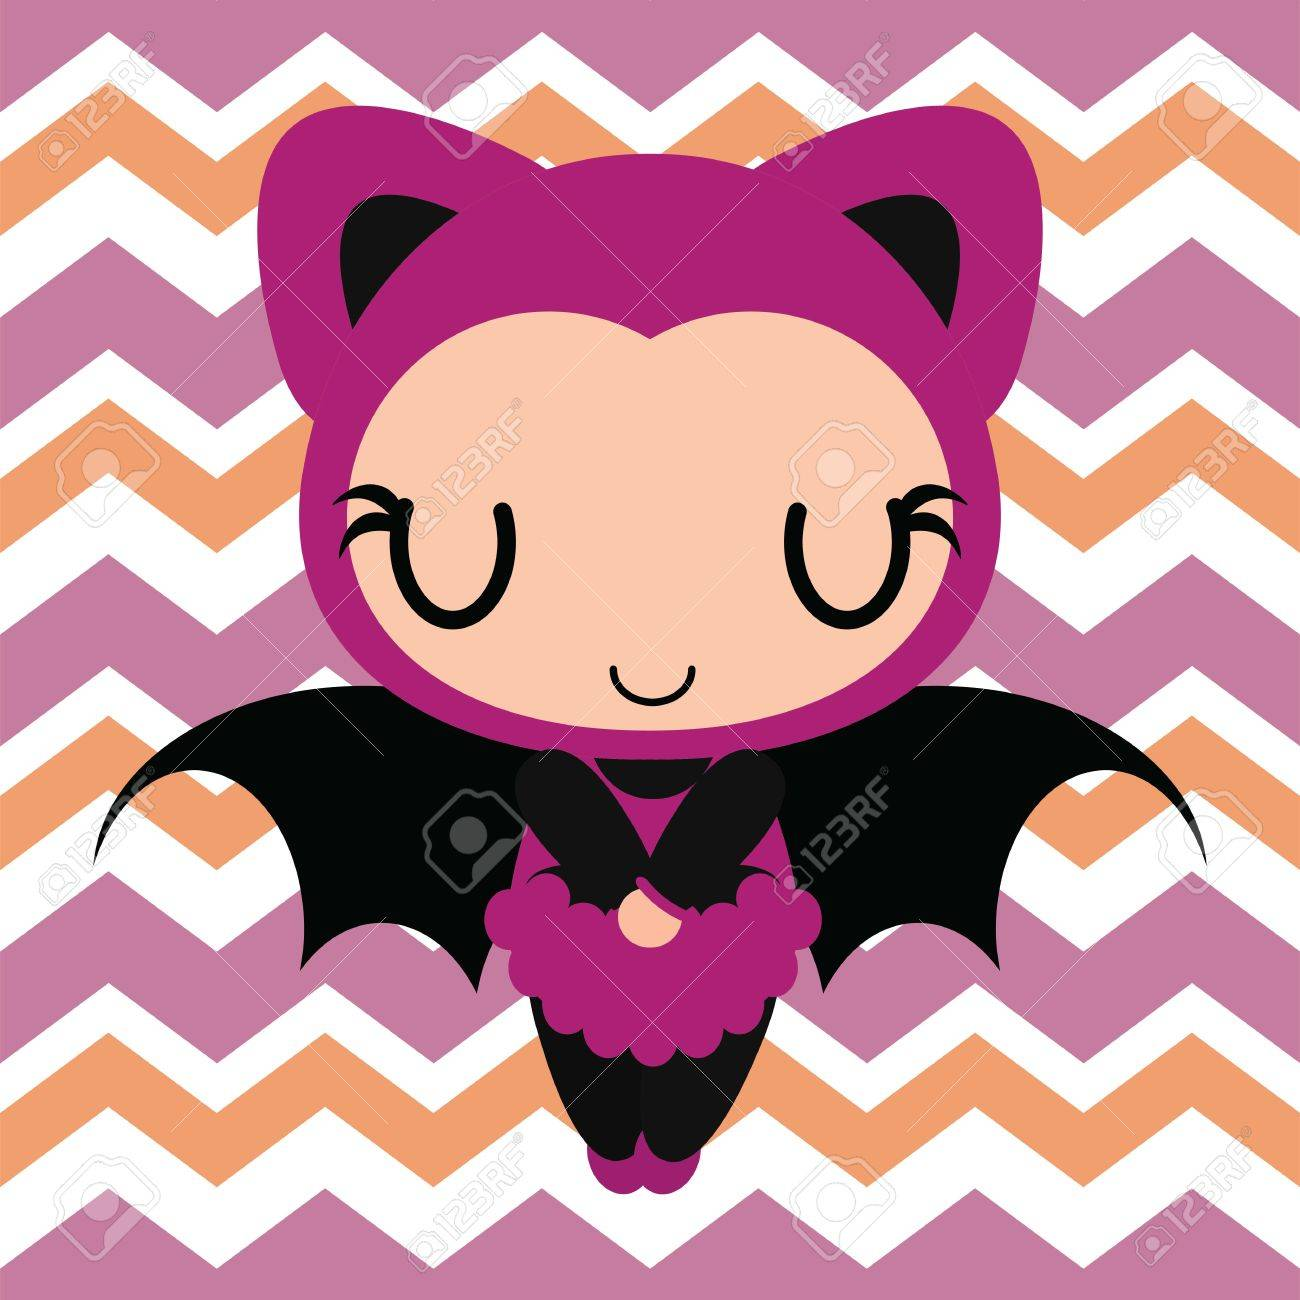 Cute Bat Girl Sleeps On Chevron Background Vector Cartoon Il Ration For Halloween Card Design Wallpaper